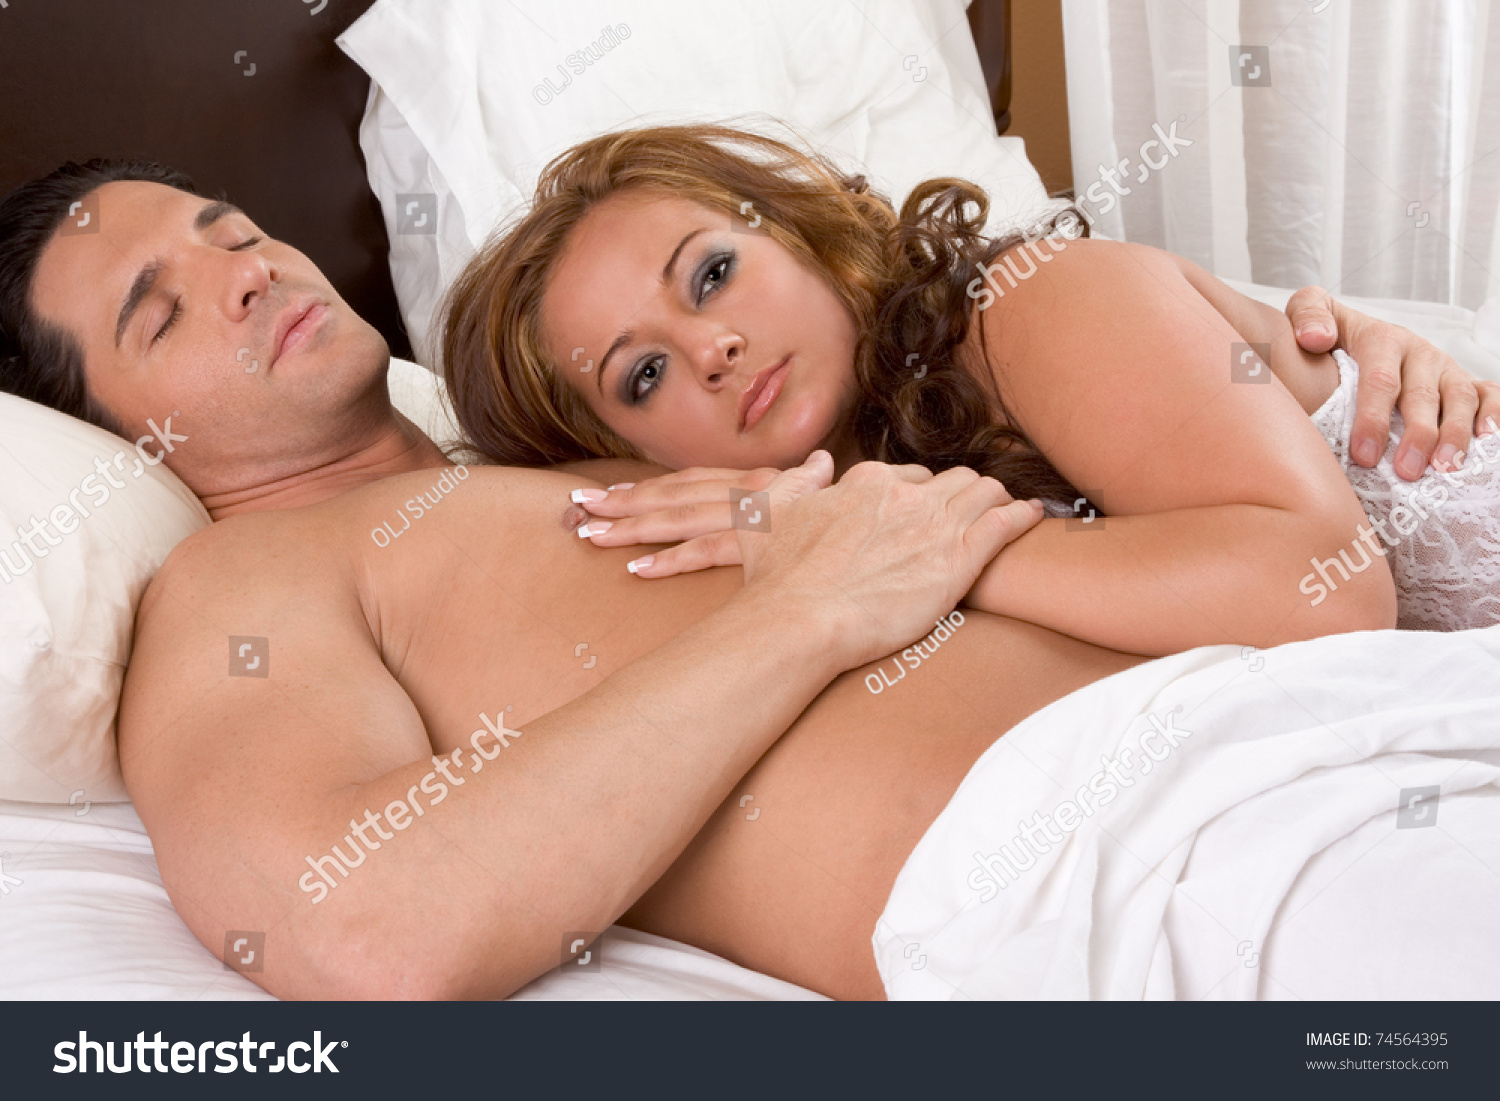 Female severe pain first penetration